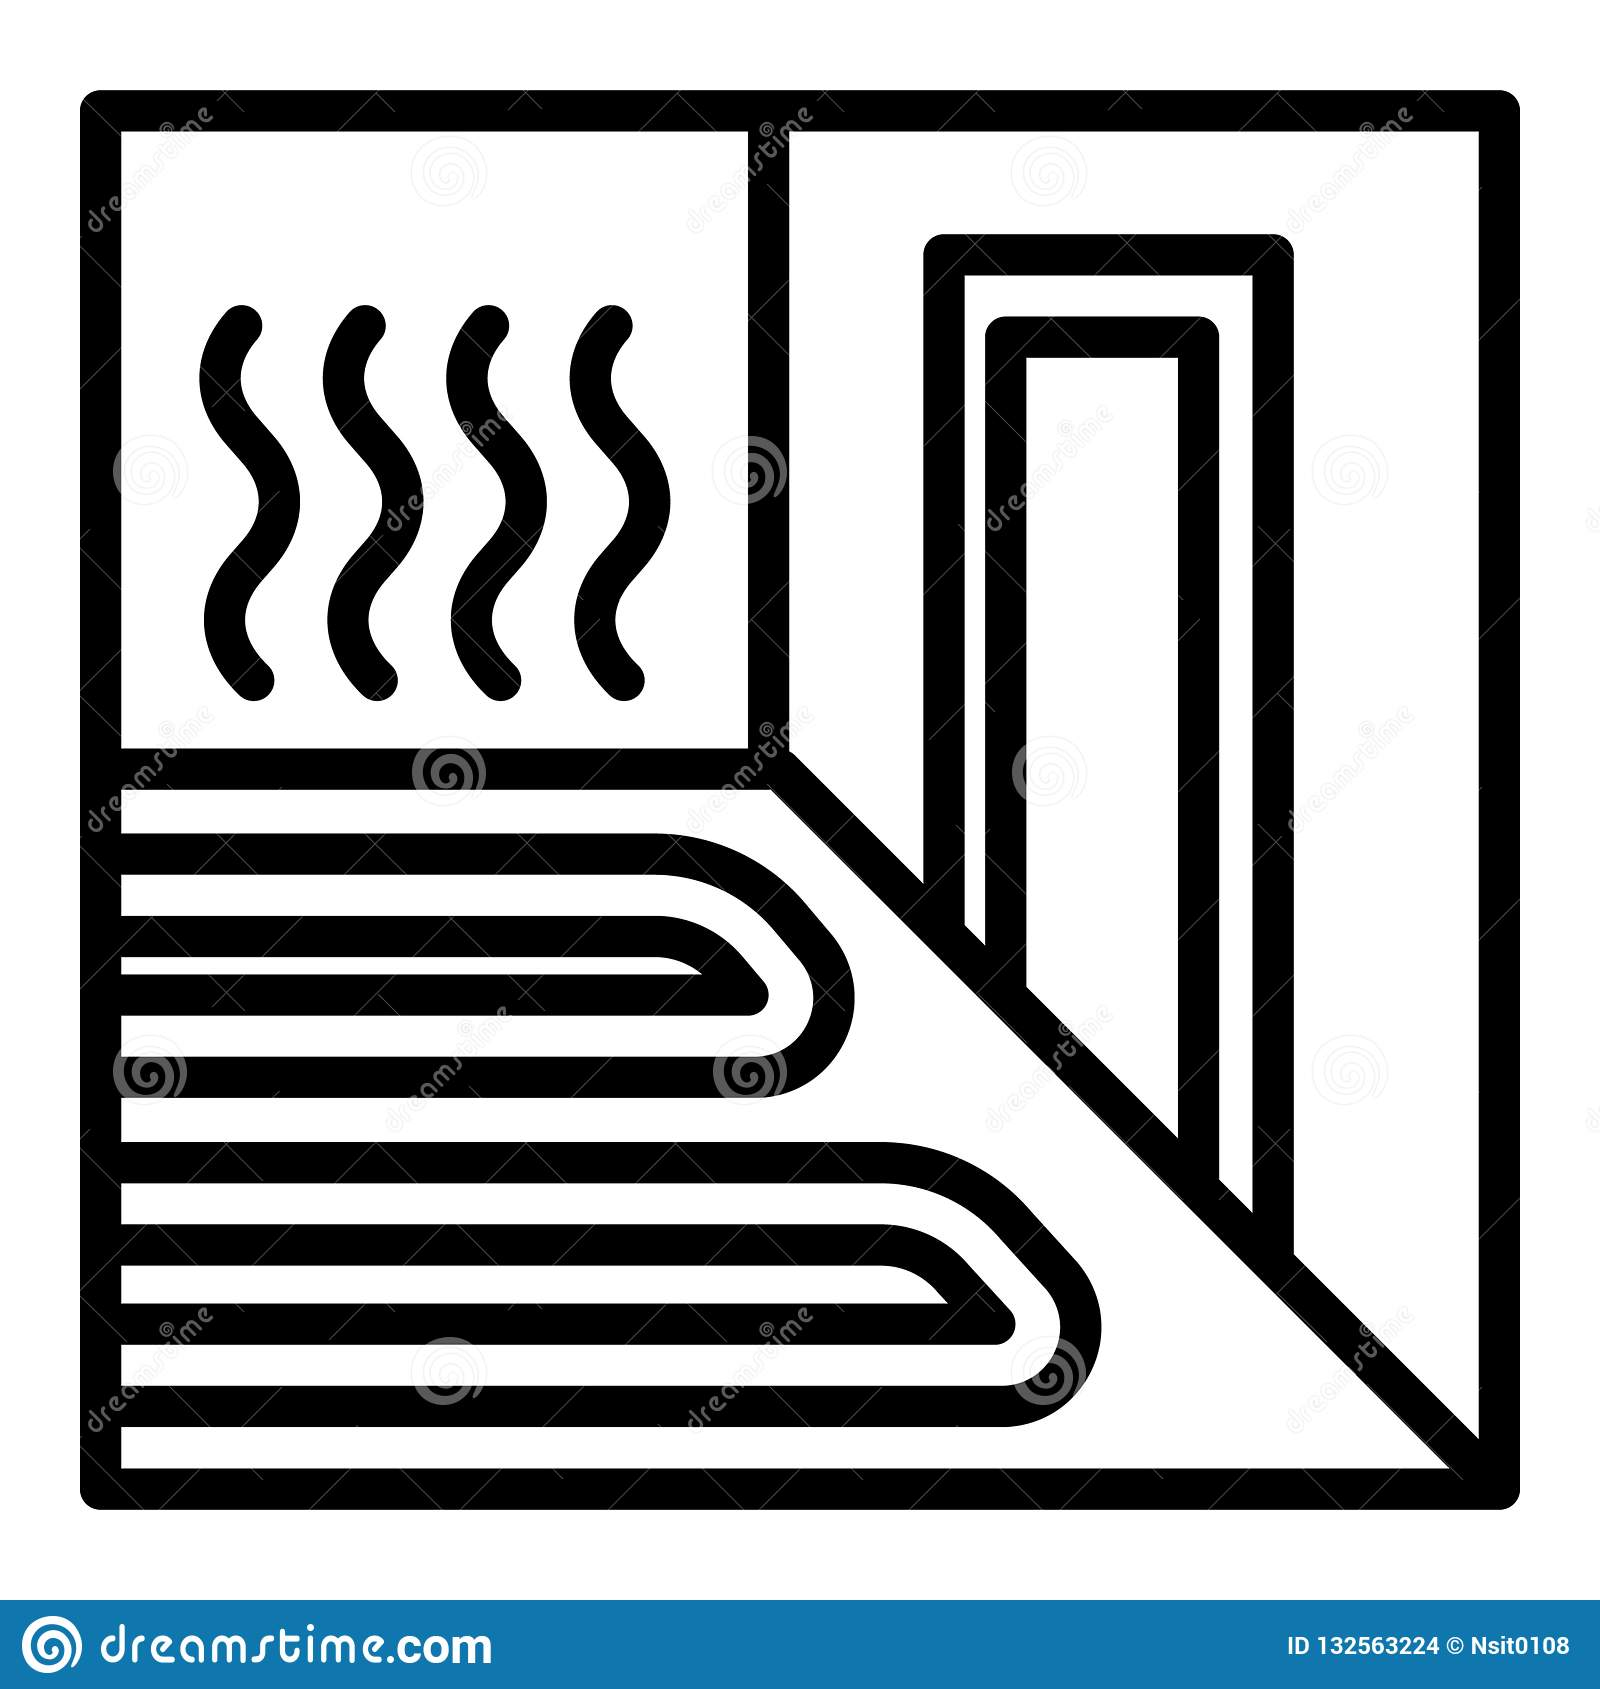 Heating floor room icon, outline style